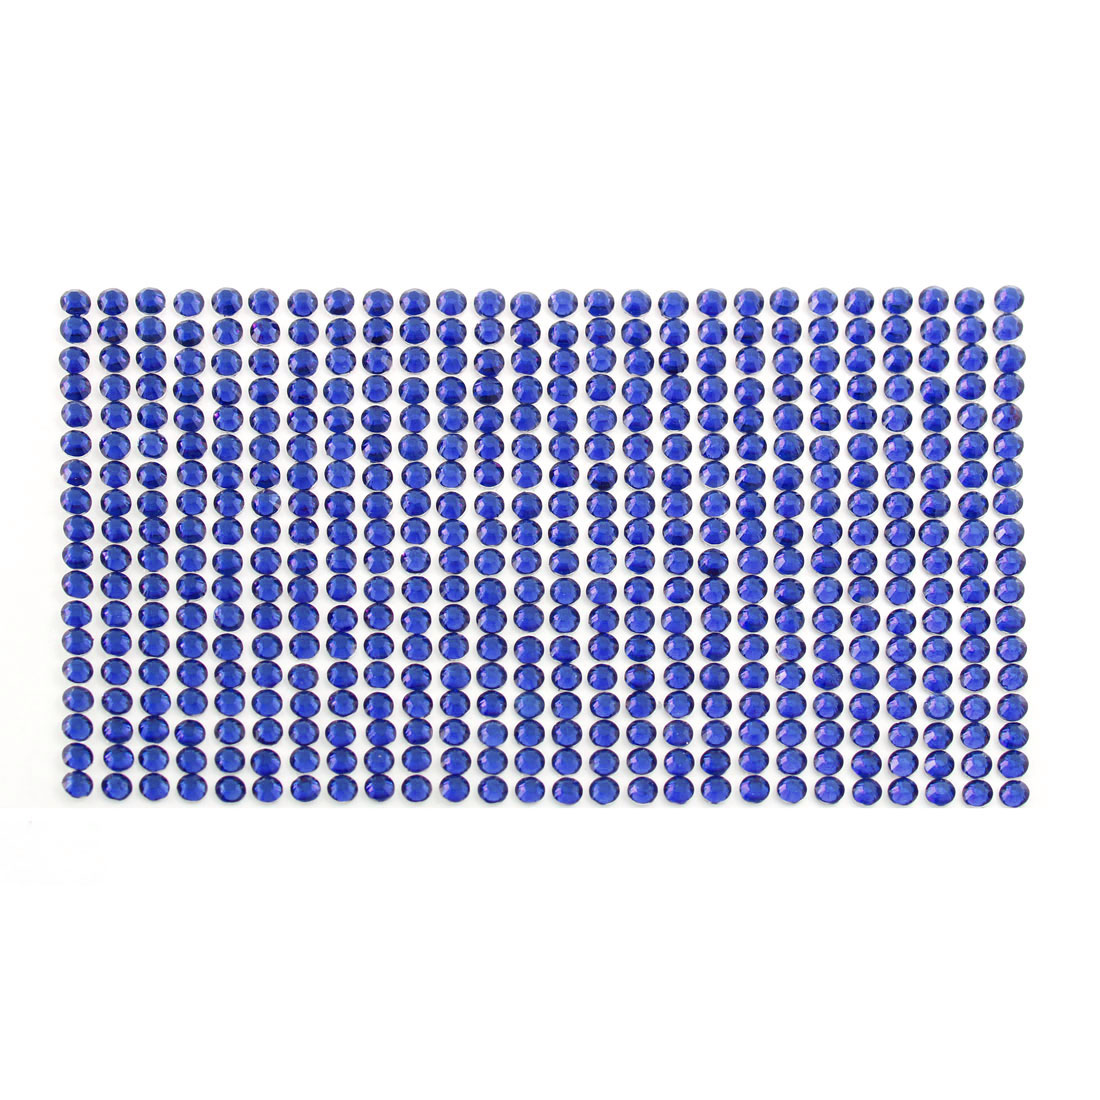 Dark Blue 5mm Round Self Adhesive Bling Crystal Rhinestone Stickers for Car Mobile PC Decoration